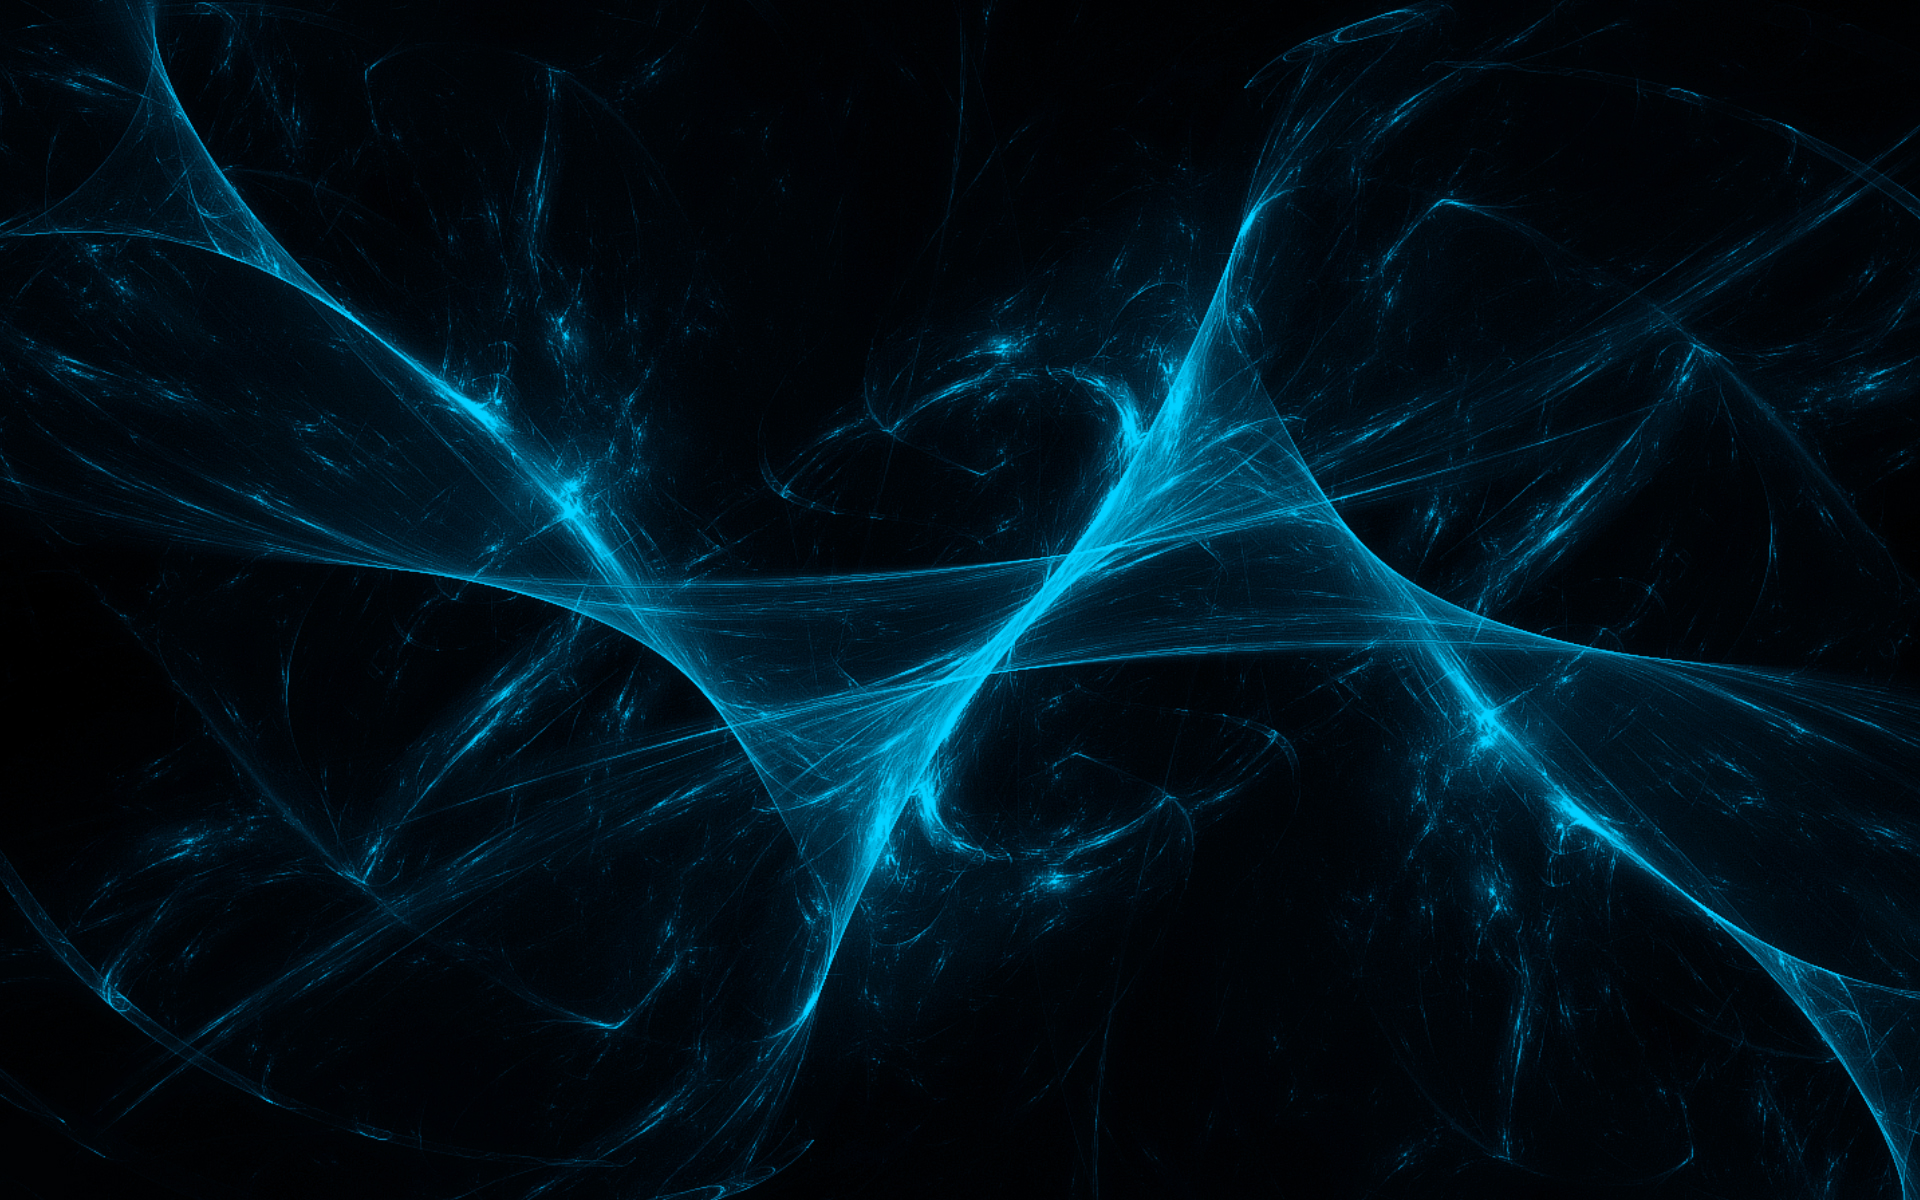 1920x1200 Abstract desktop PC and Mac wallpaper 1920x1200